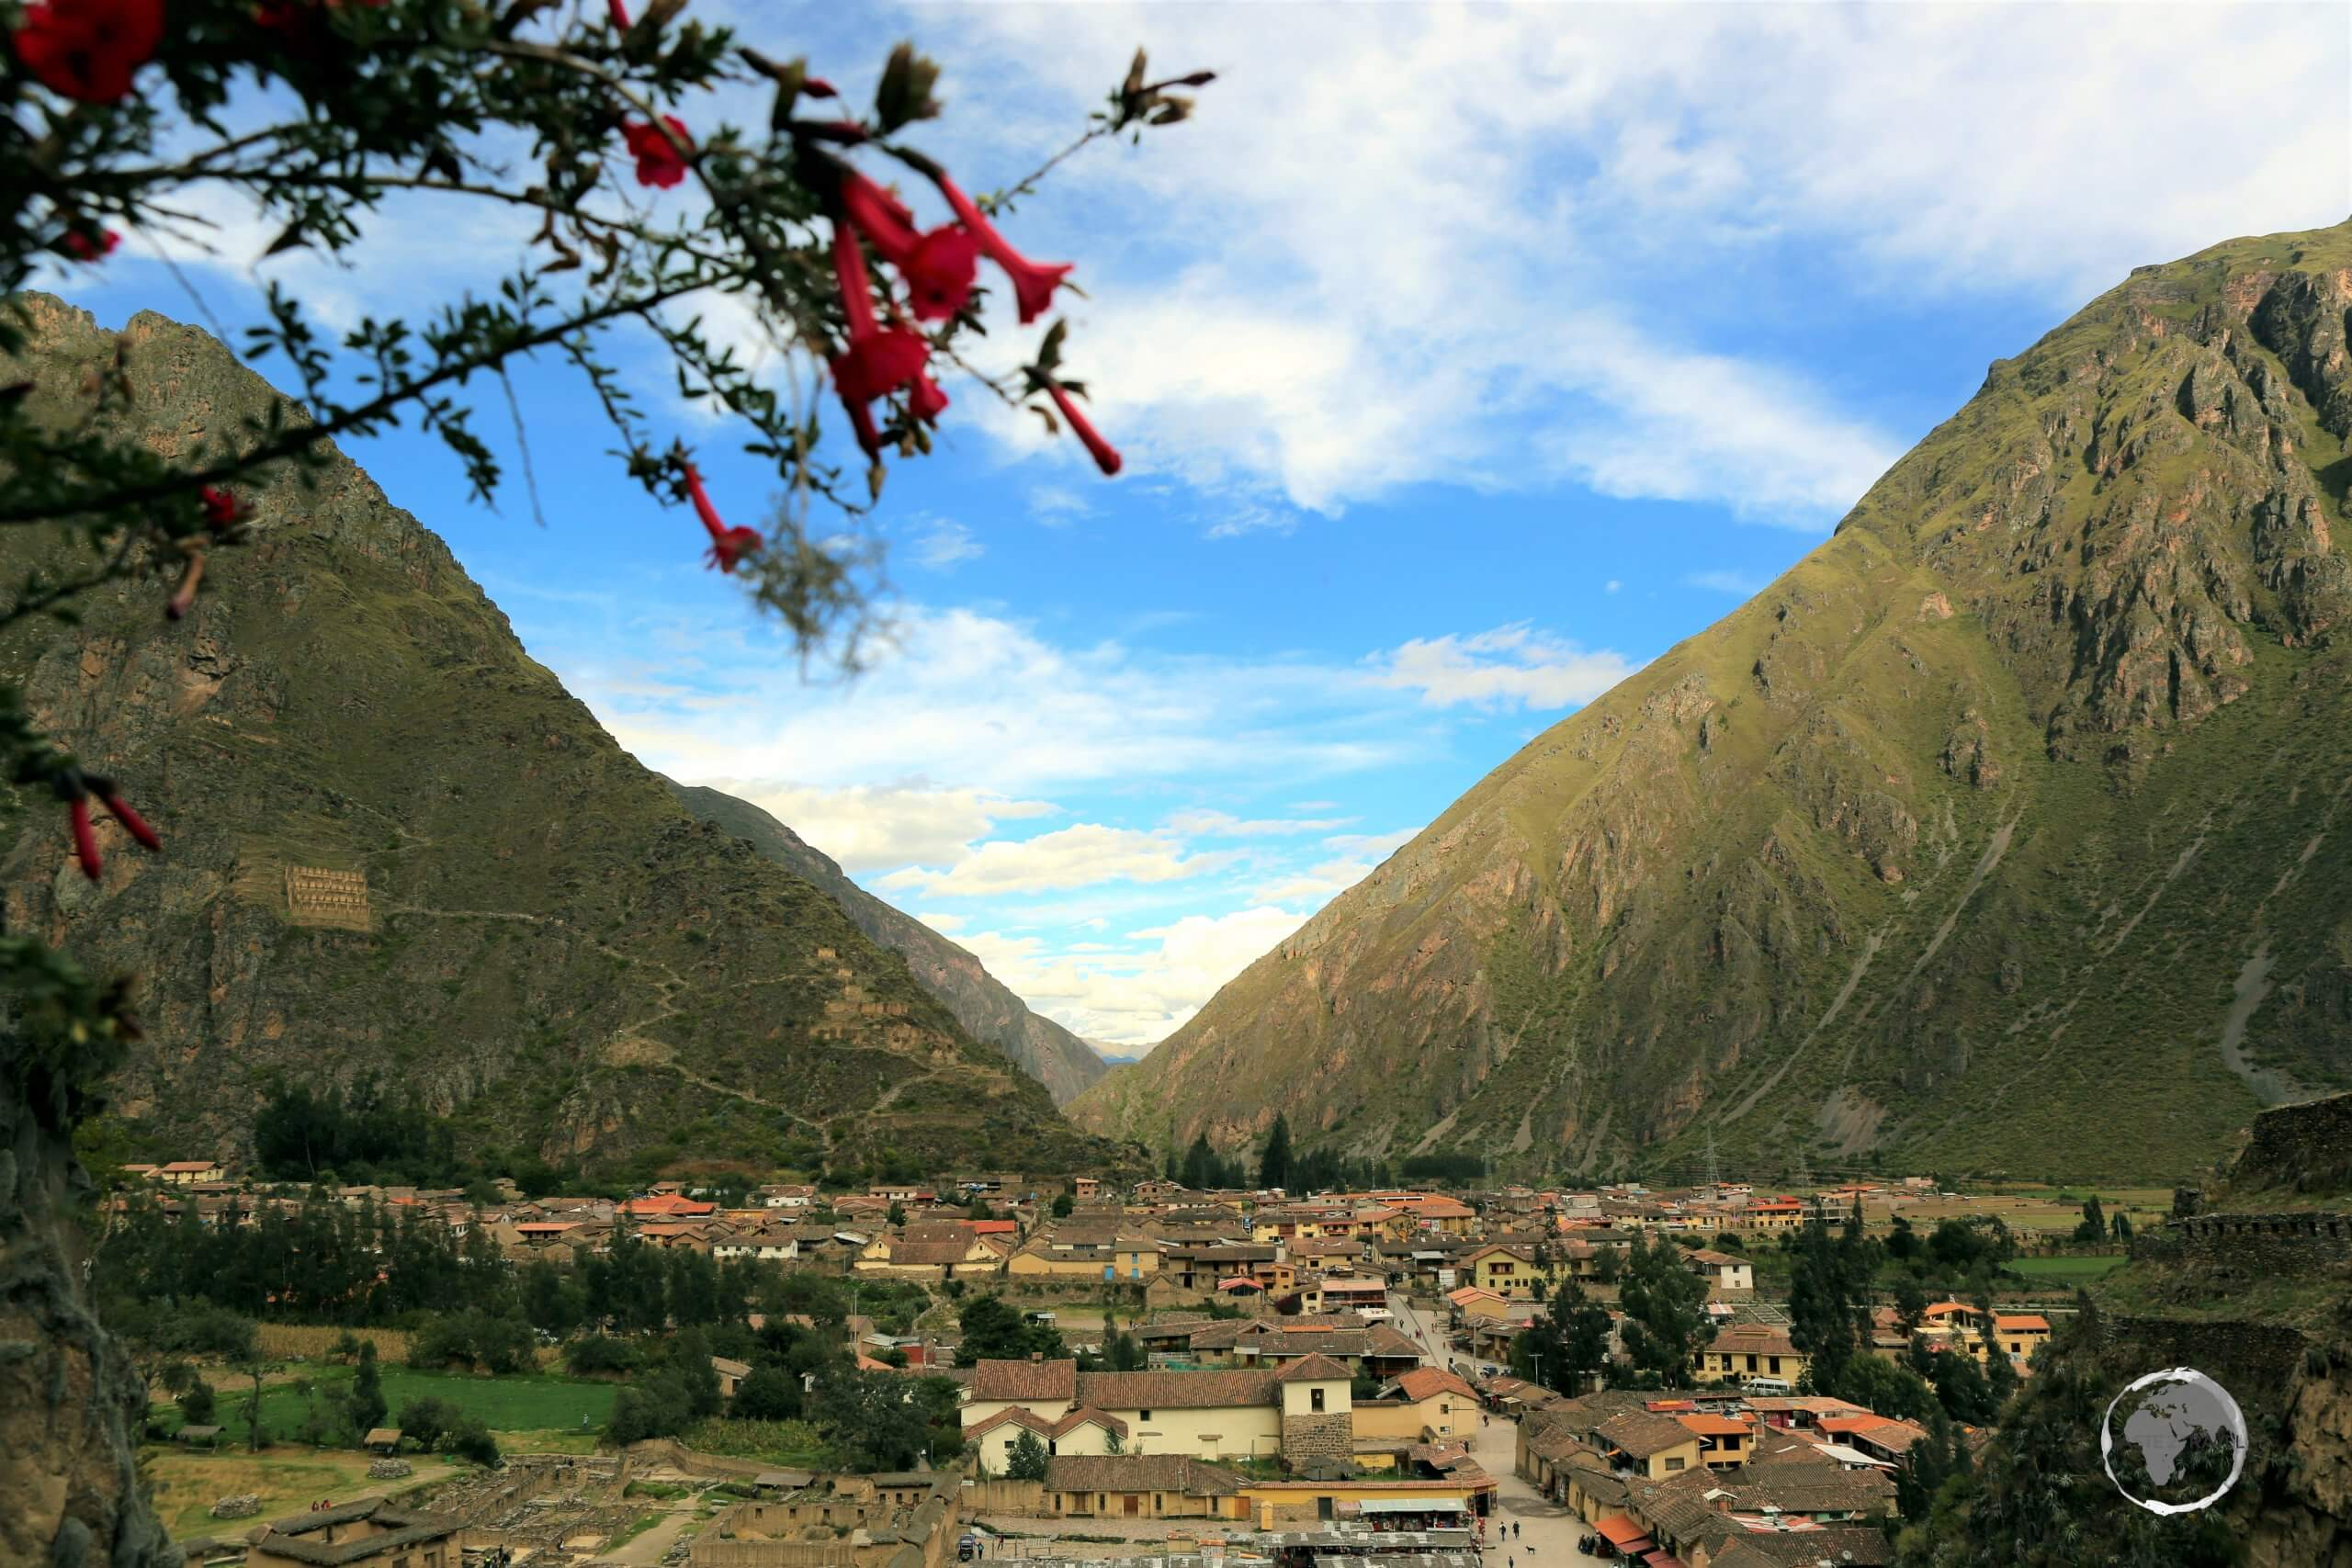 A view of the Peruvian Andean town of Ollantaytambo, from the Ollantaytambo ruins, a massive Inca fortress with large stone terraces on a hillside.